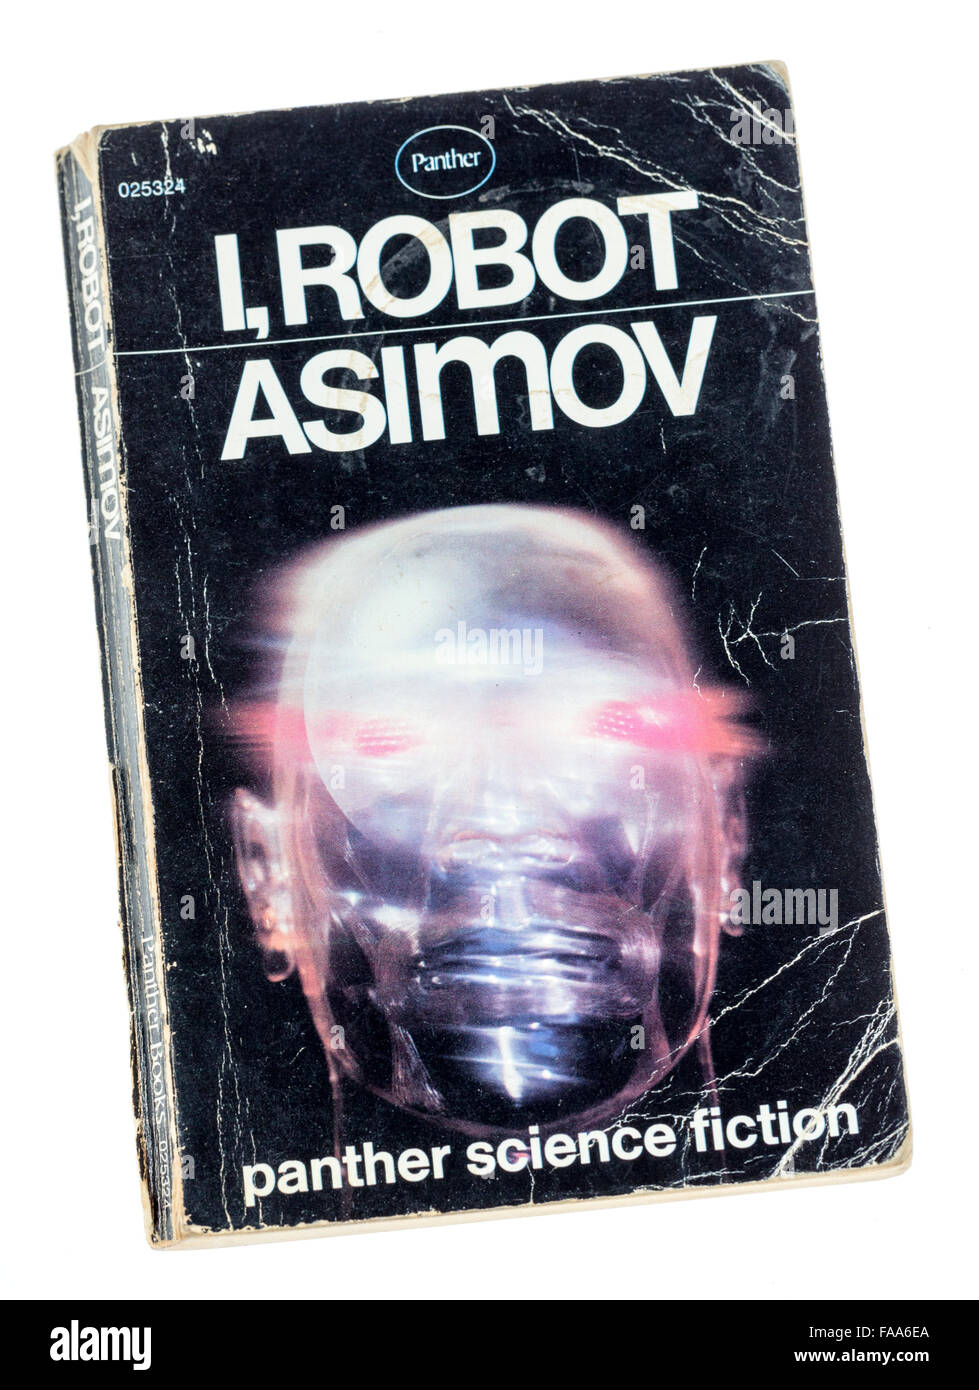 I, Robot book cover by Isaac Asimov, Panther science fiction - Stock Image